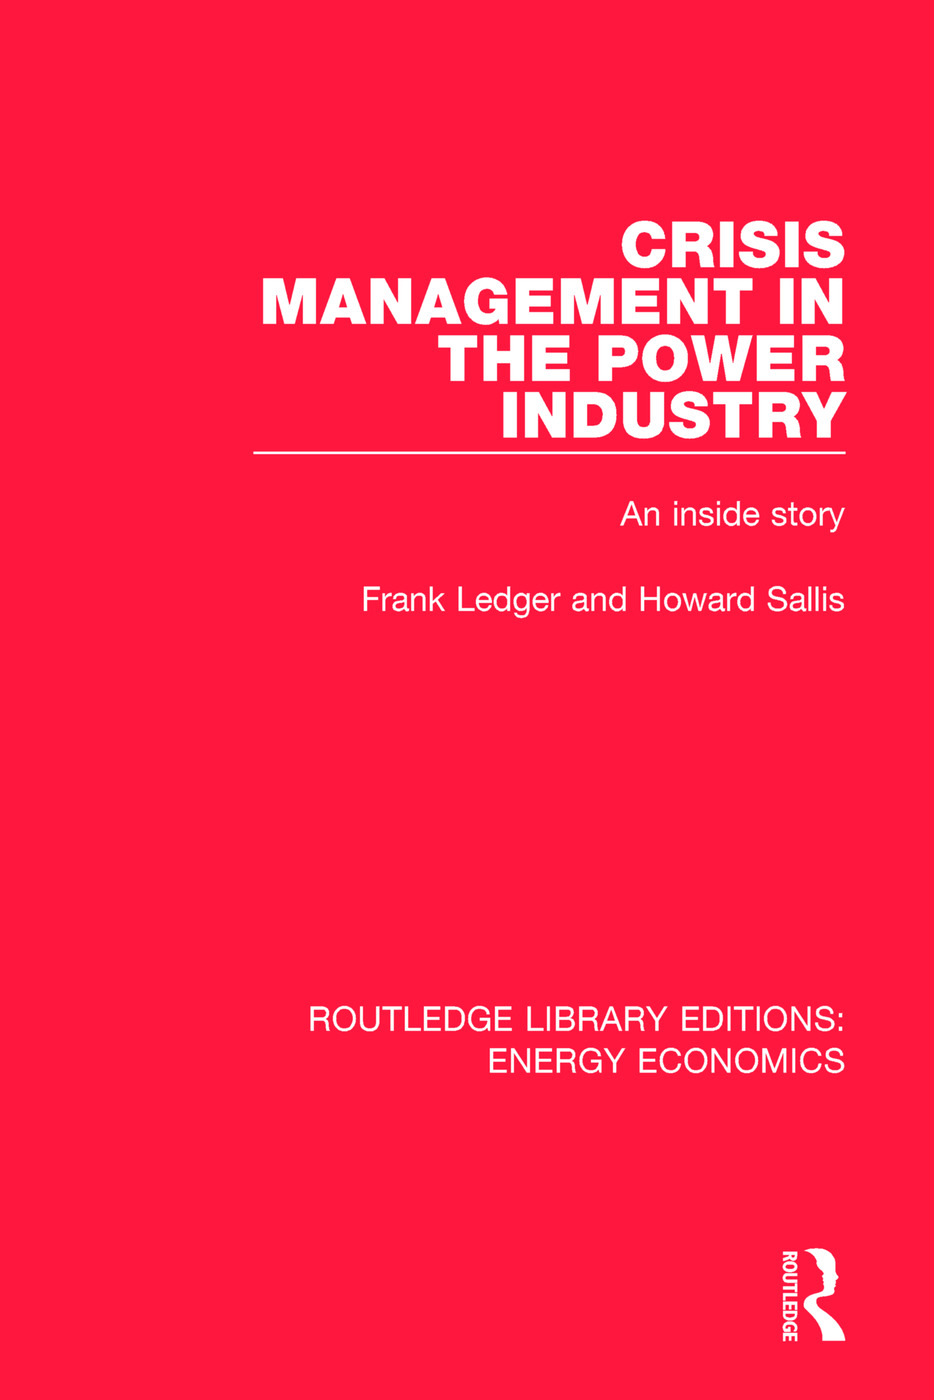 Crisis Management in the Power Industry